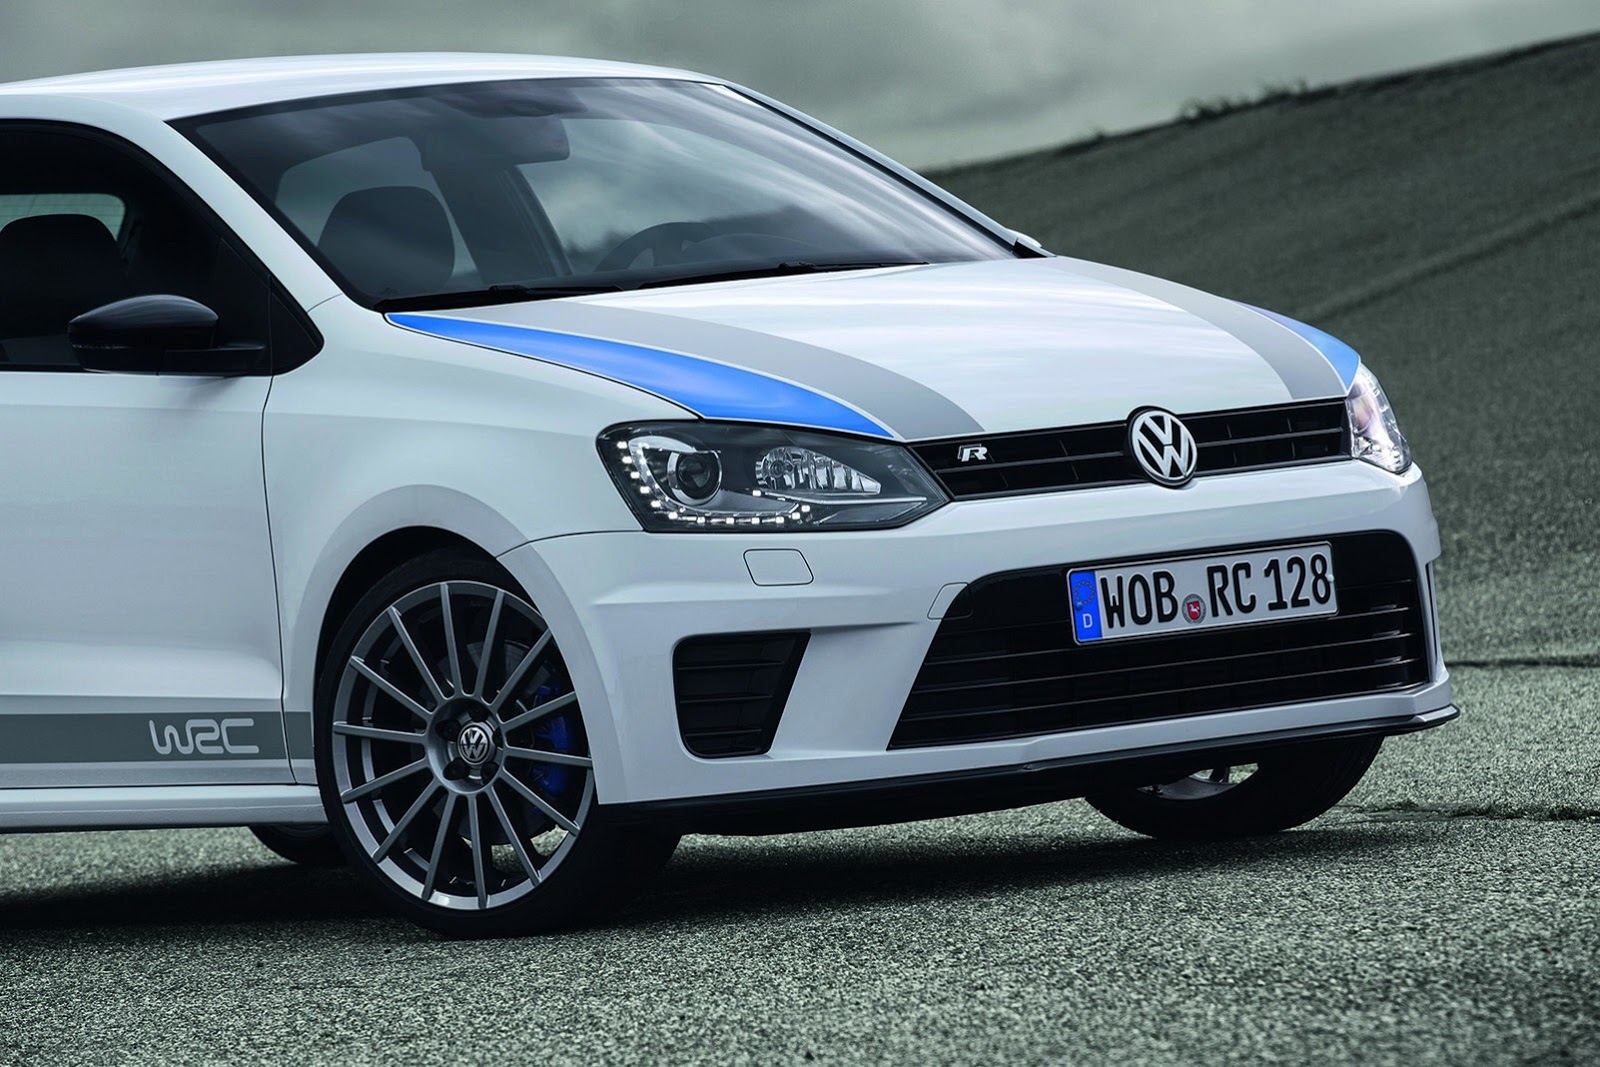 volkswagen polo r wrc production car pics aplenty autoevolution. Black Bedroom Furniture Sets. Home Design Ideas